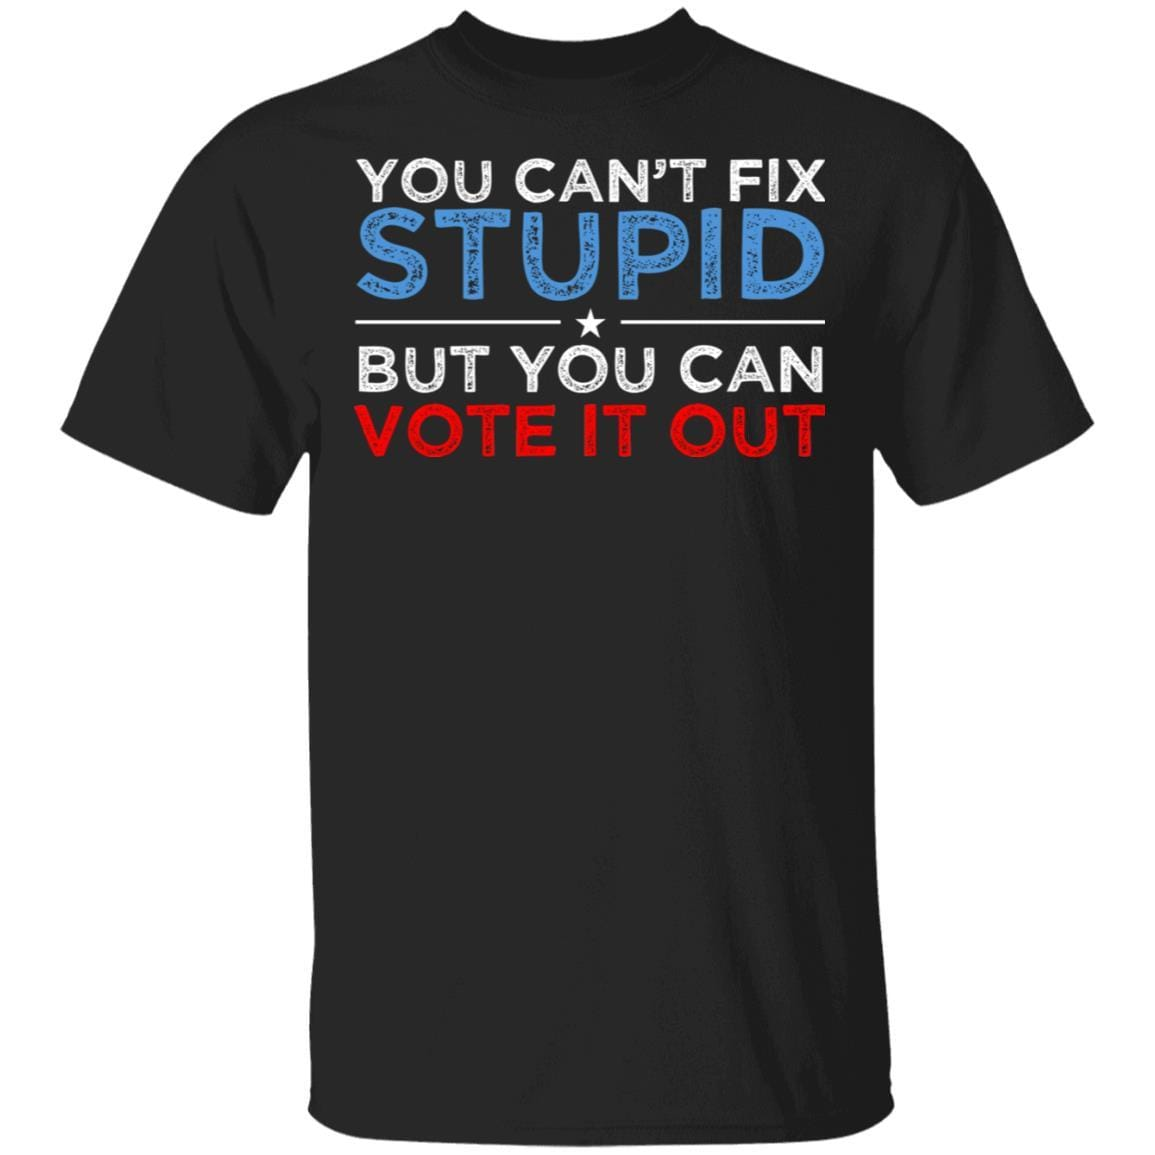 You Can't Fix Stupid But You Can Vote It Out Anti Donald Trump T-Shirts, Hoodies 1049-9953-88254664-48144 - Tee Ript